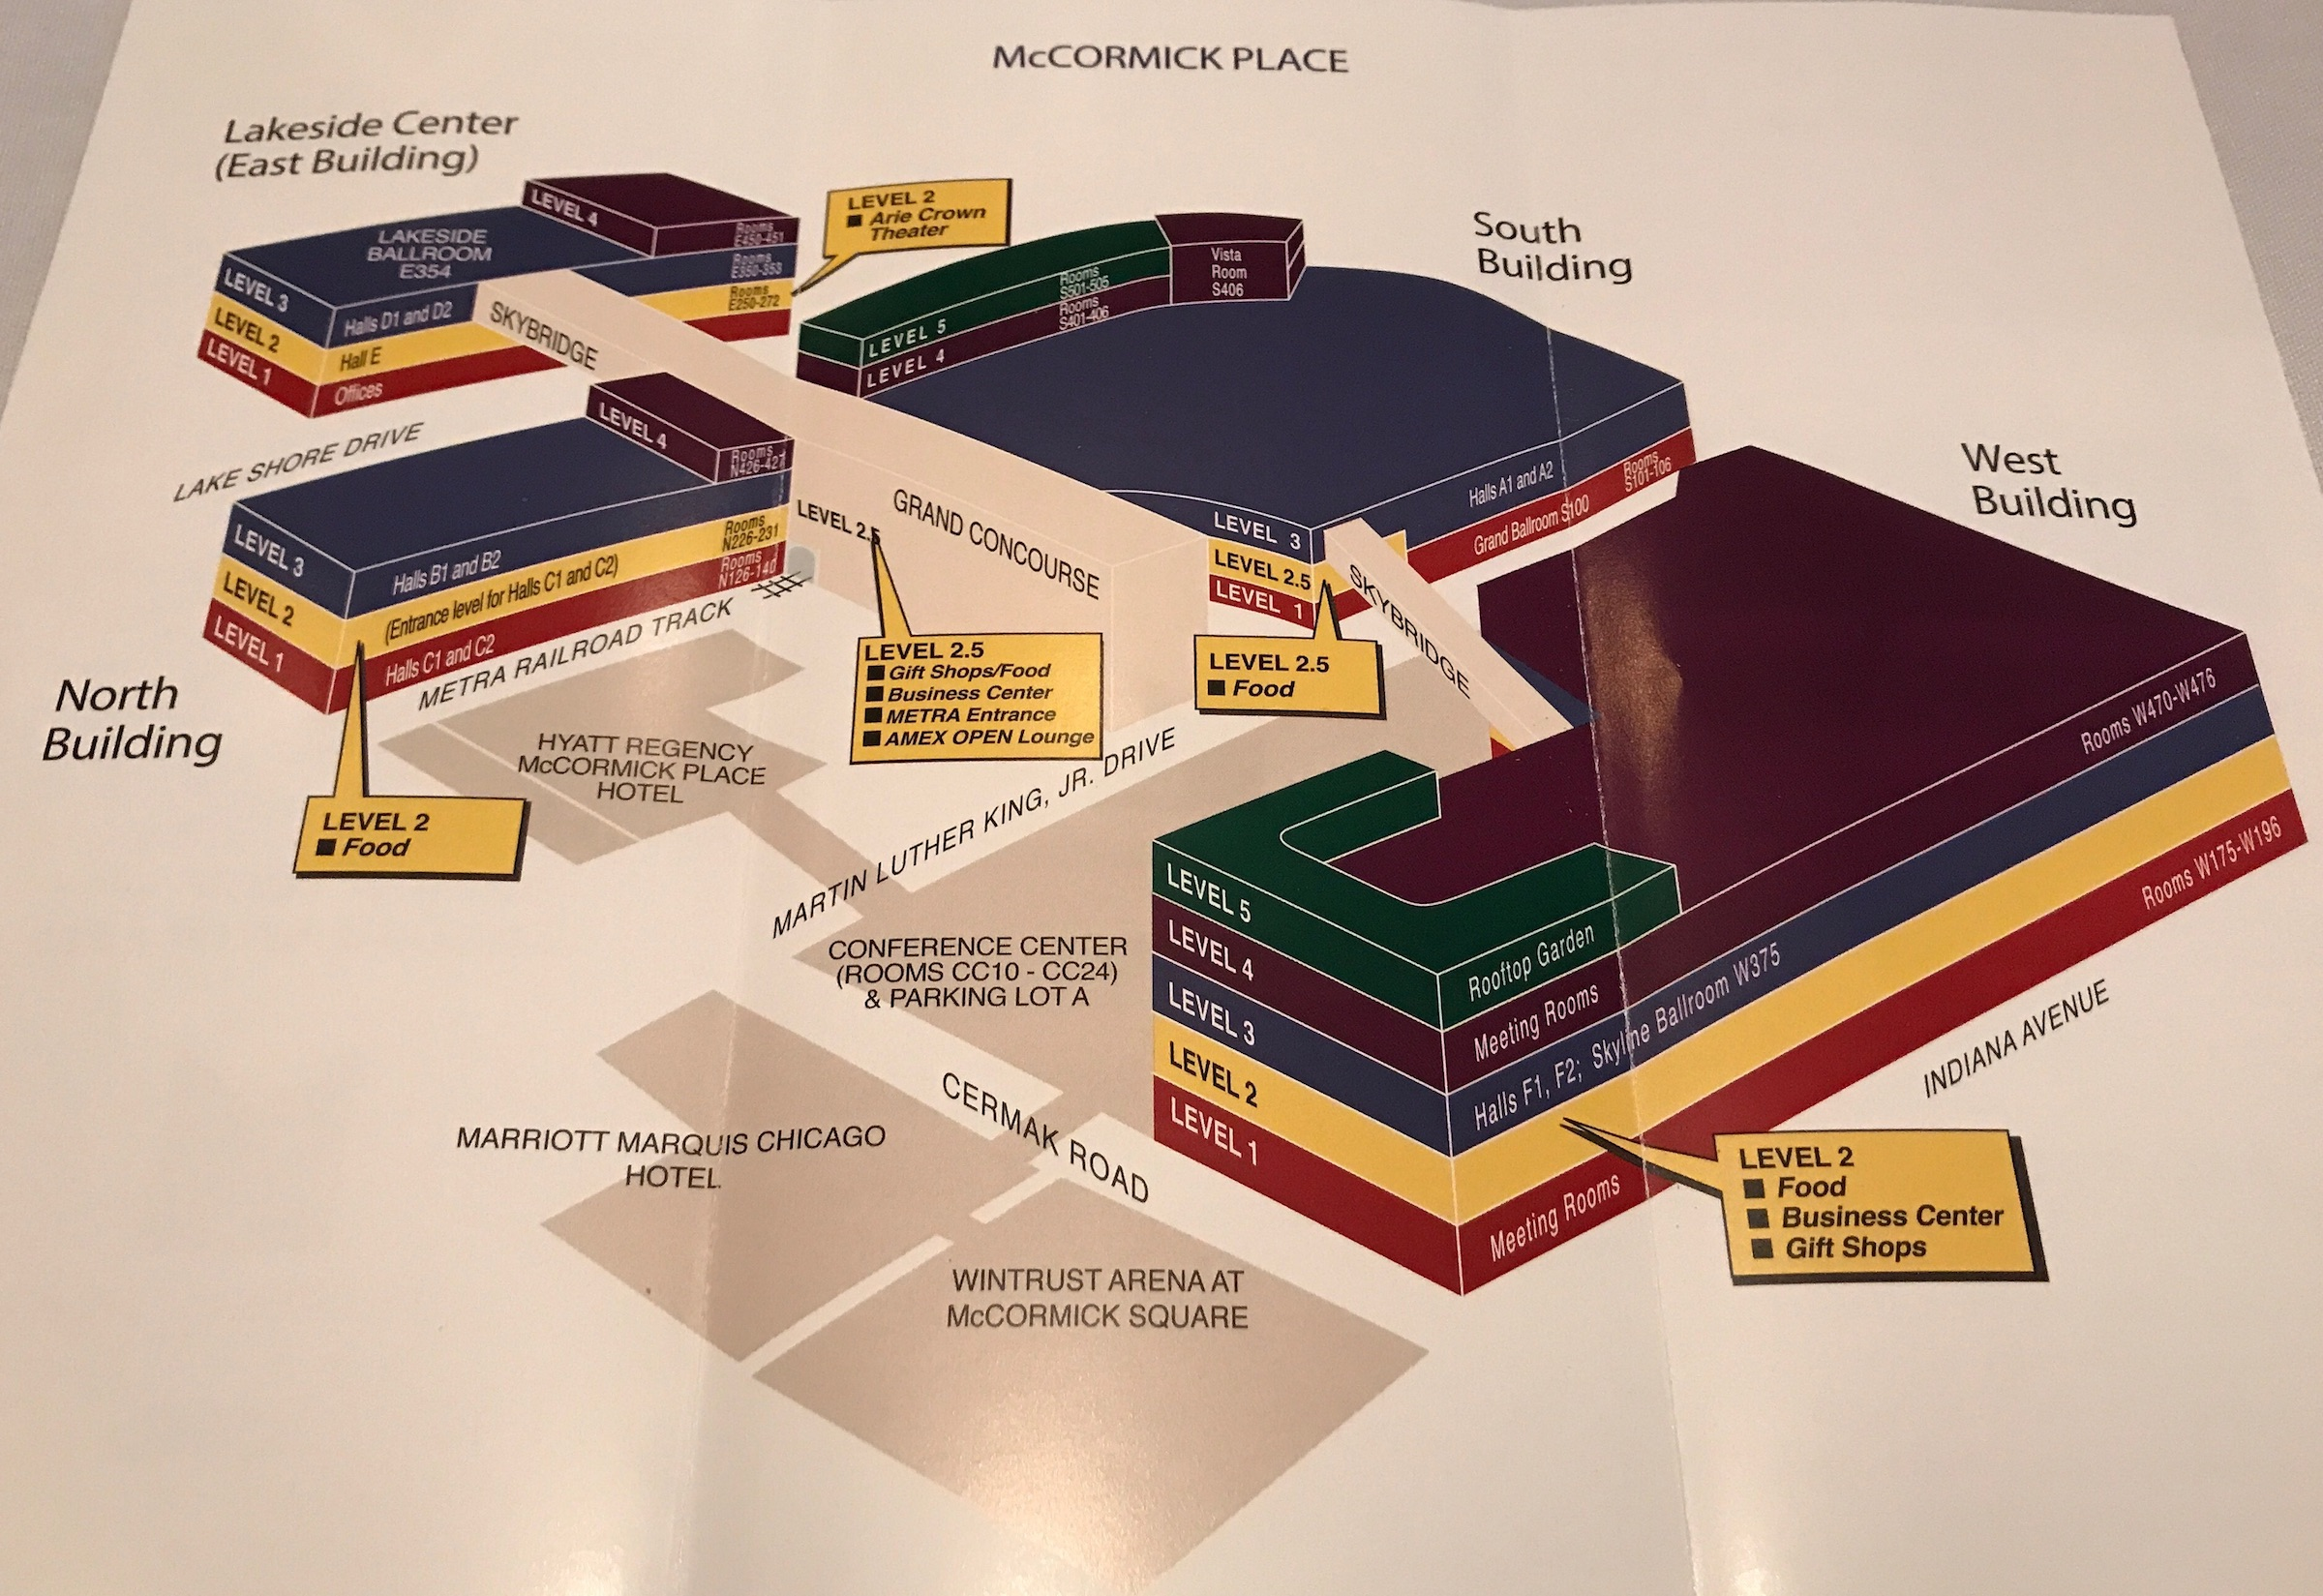 Mccormick place chicago map